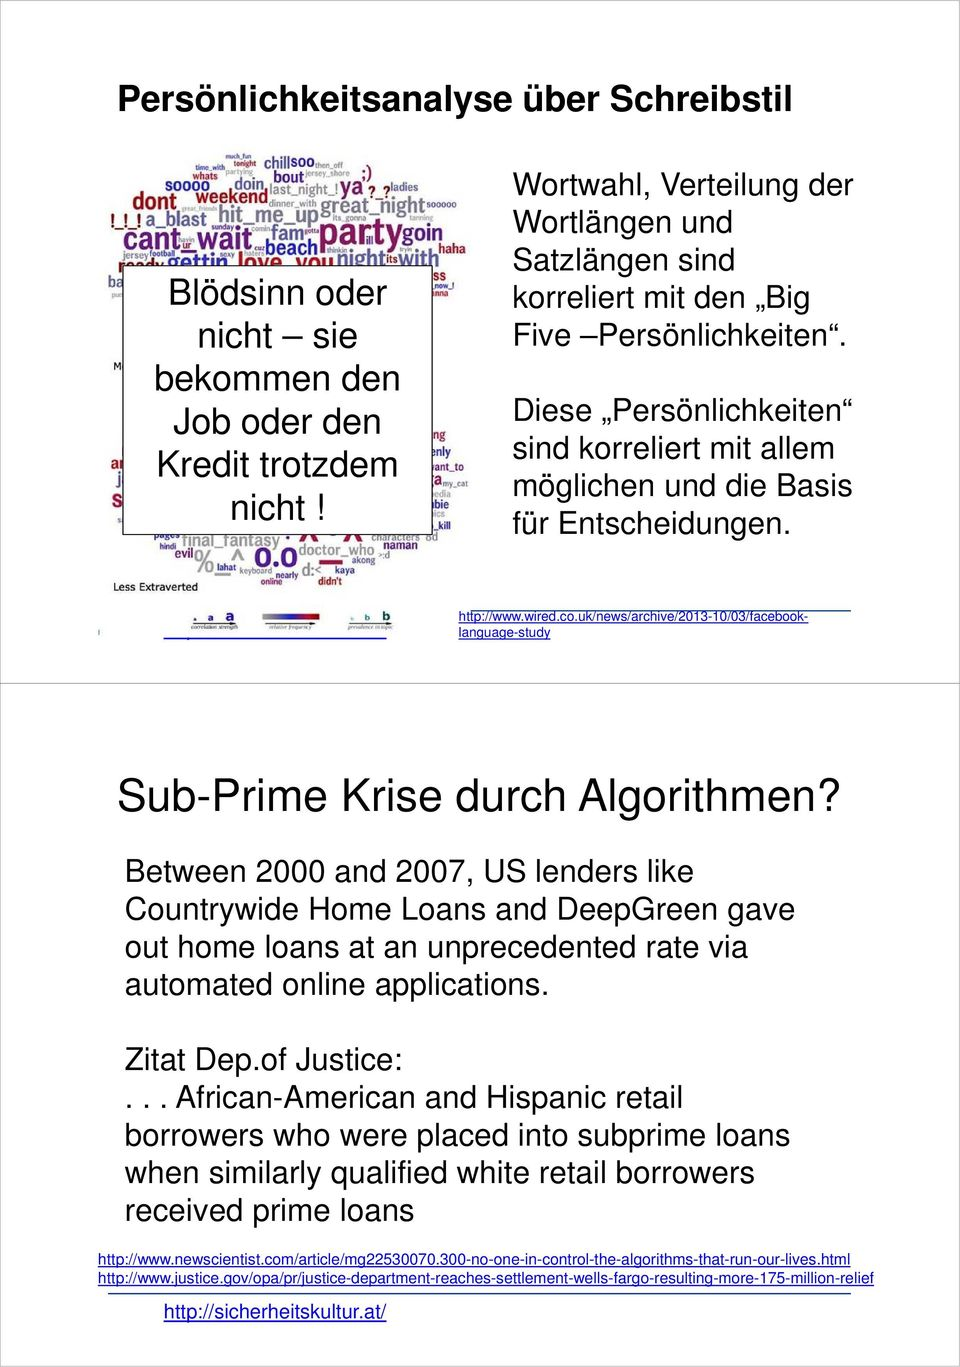 http://www.wired.co.uk/news/archive/2013-10/03/facebooklanguage-study Sub-Prime Krise durch Algorithmen?